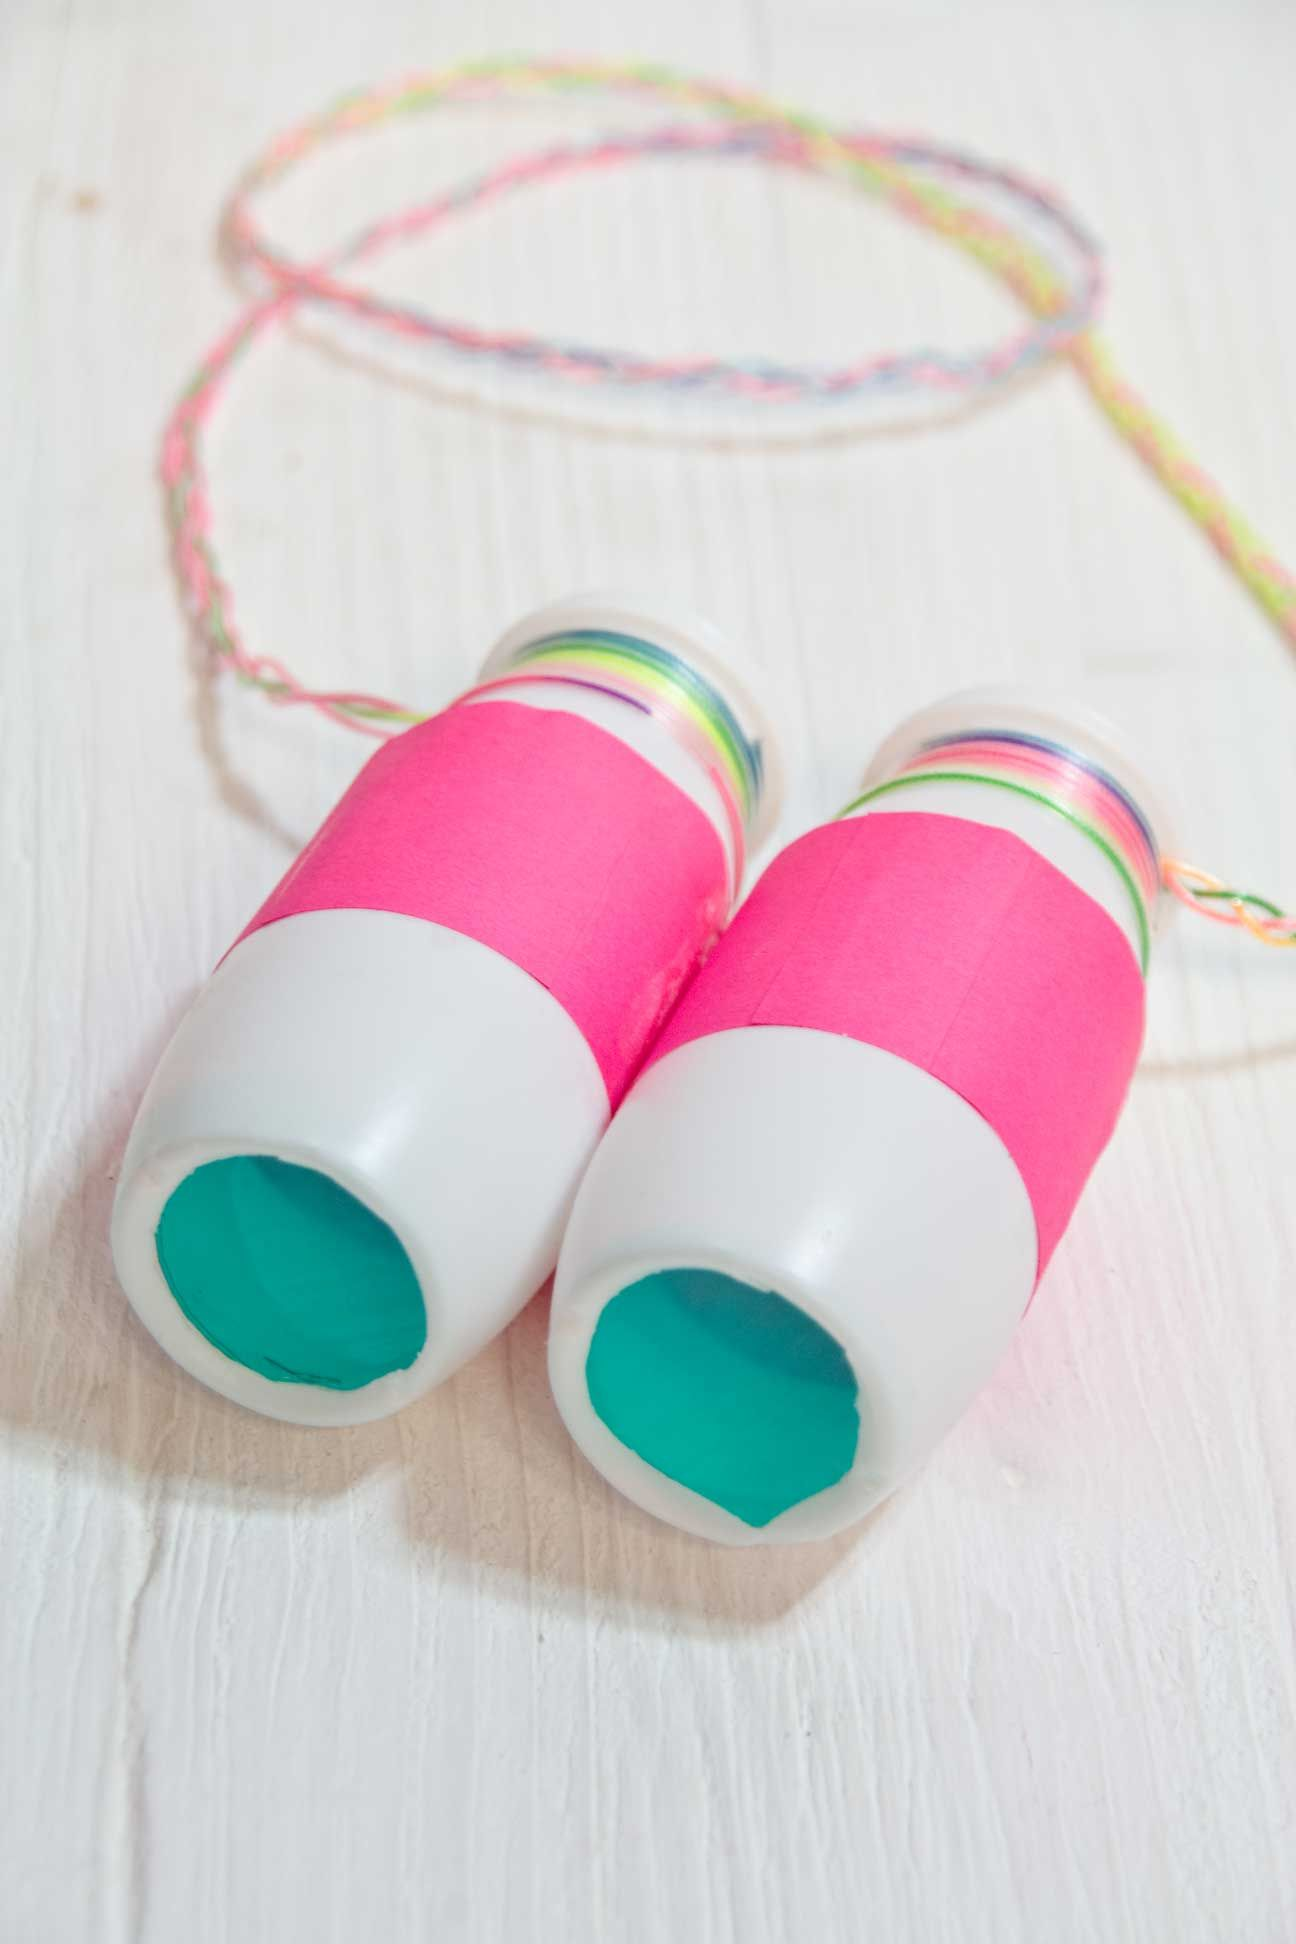 Cute Little Neon Binoculars Made From Yogurt Containers Diy For